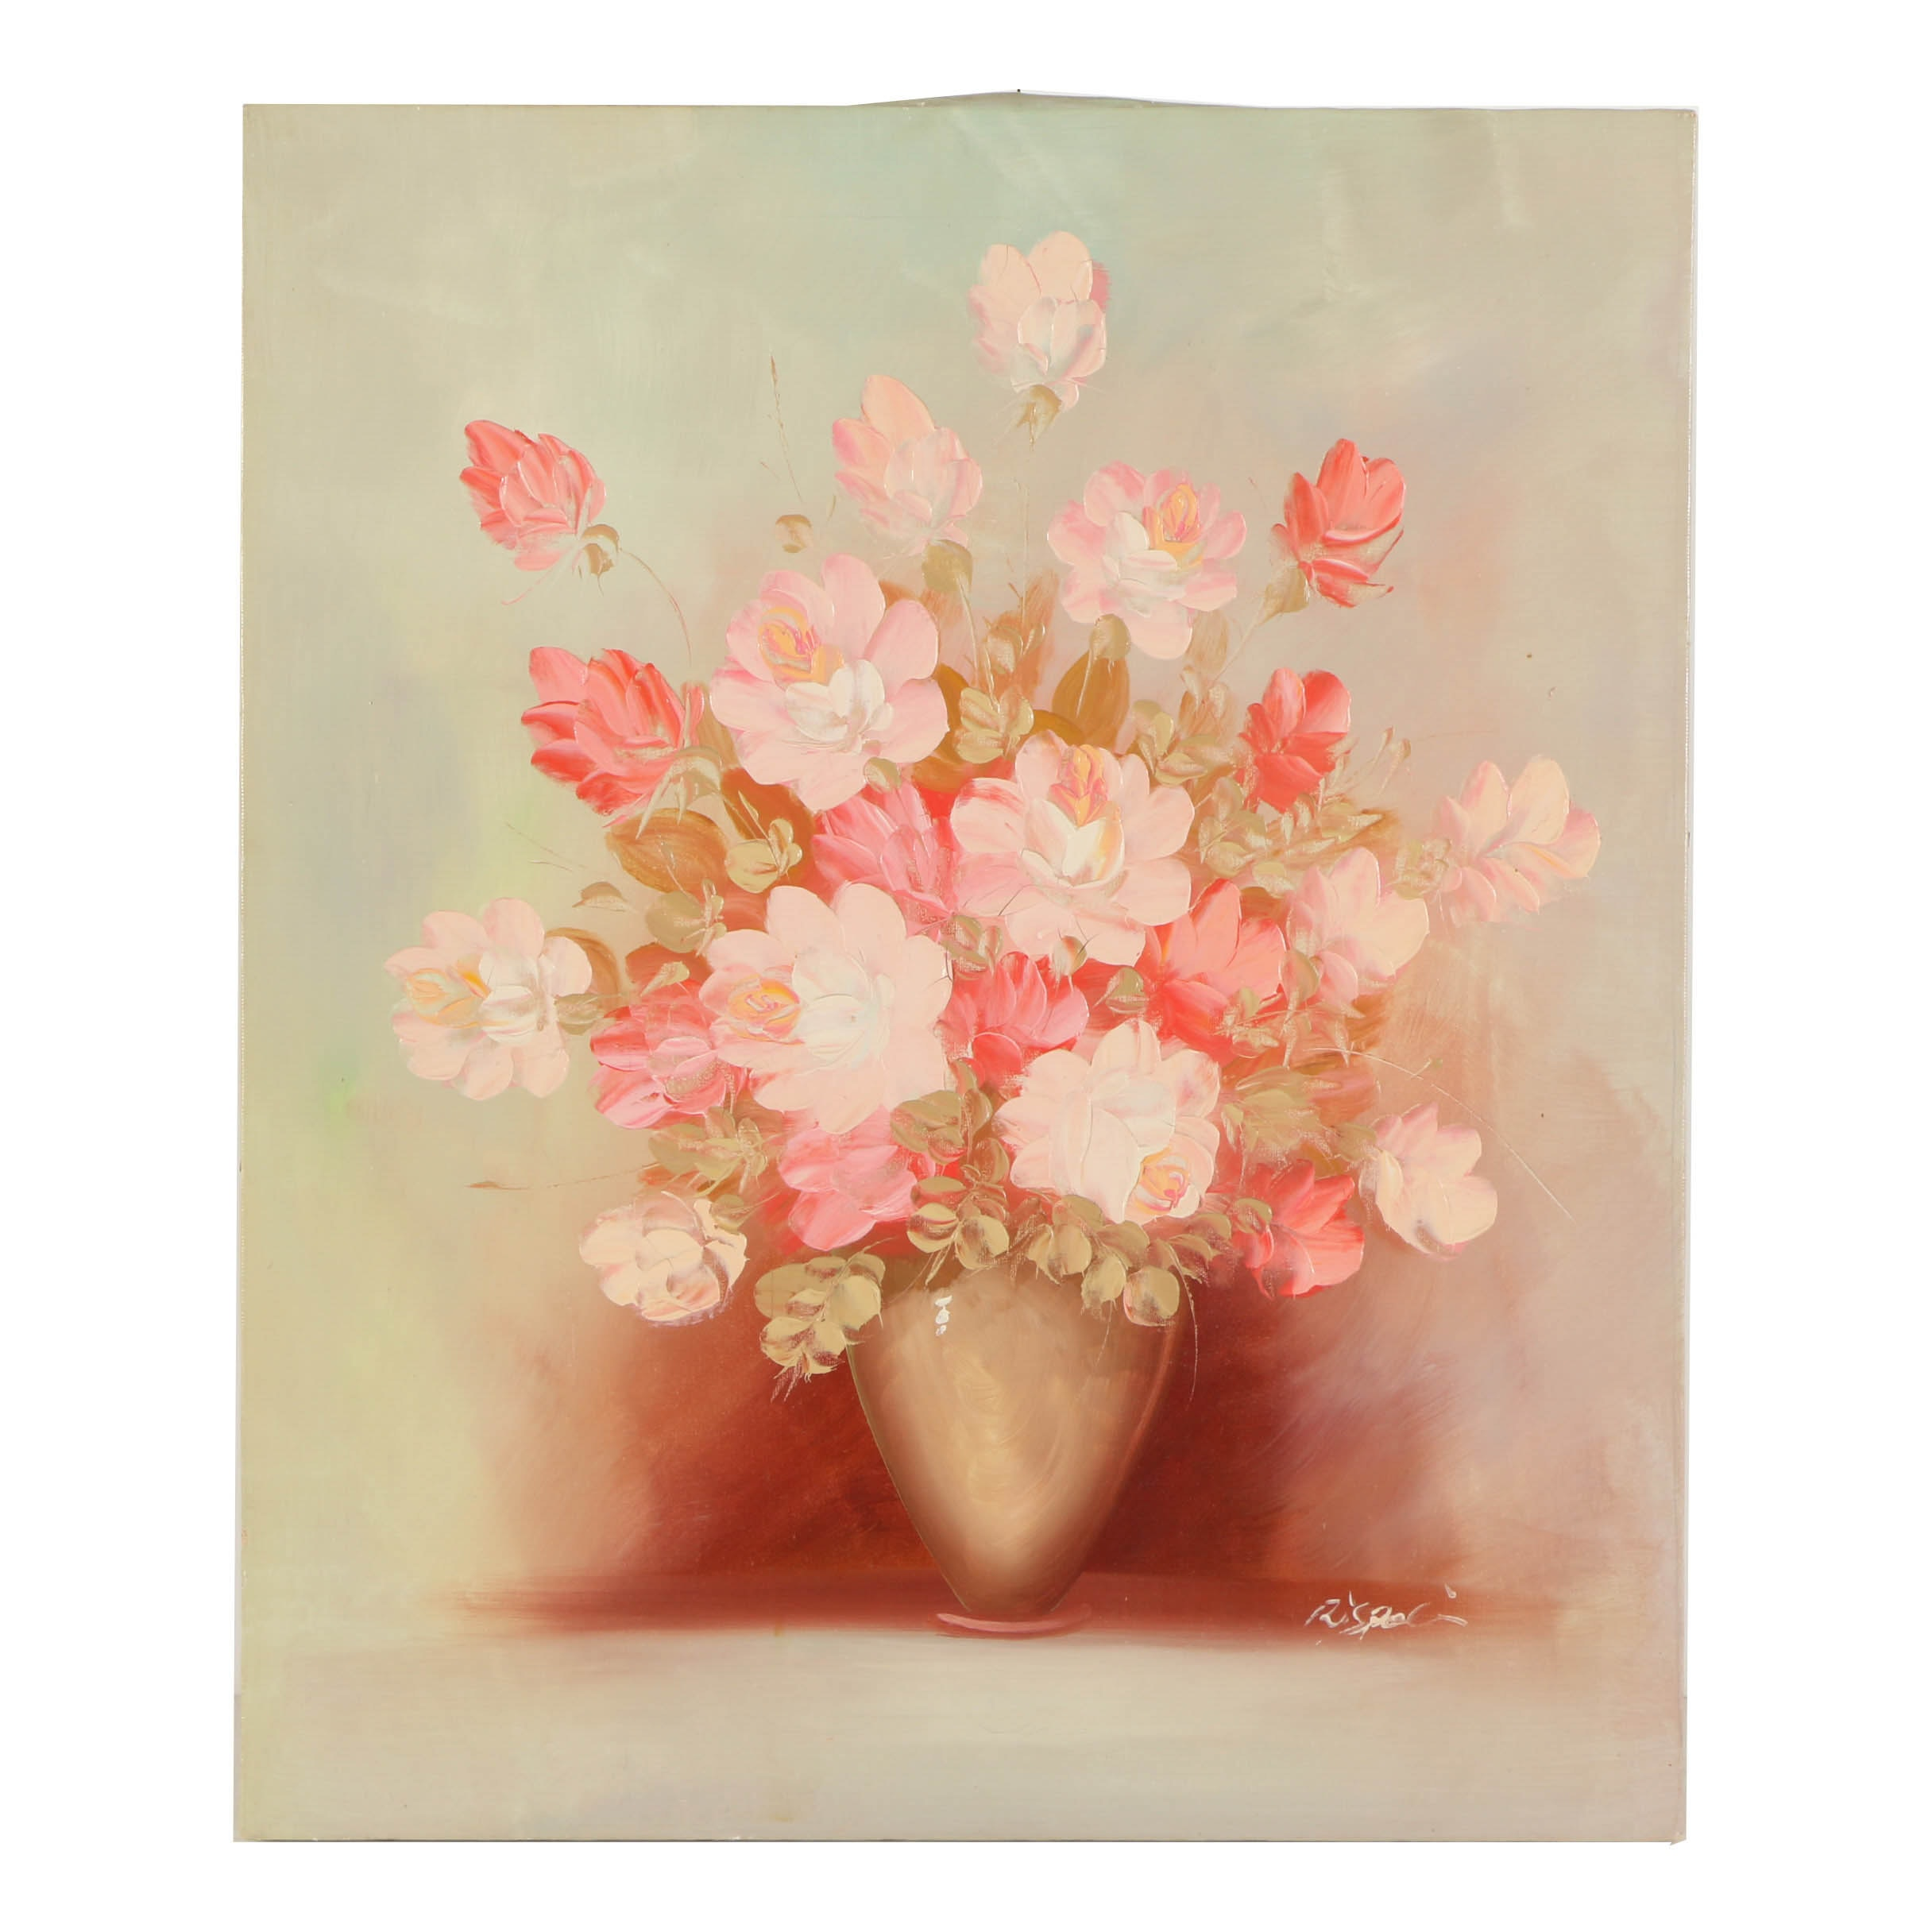 Rispoli Oil Painting on Canvas of Still Life with Pink Roses